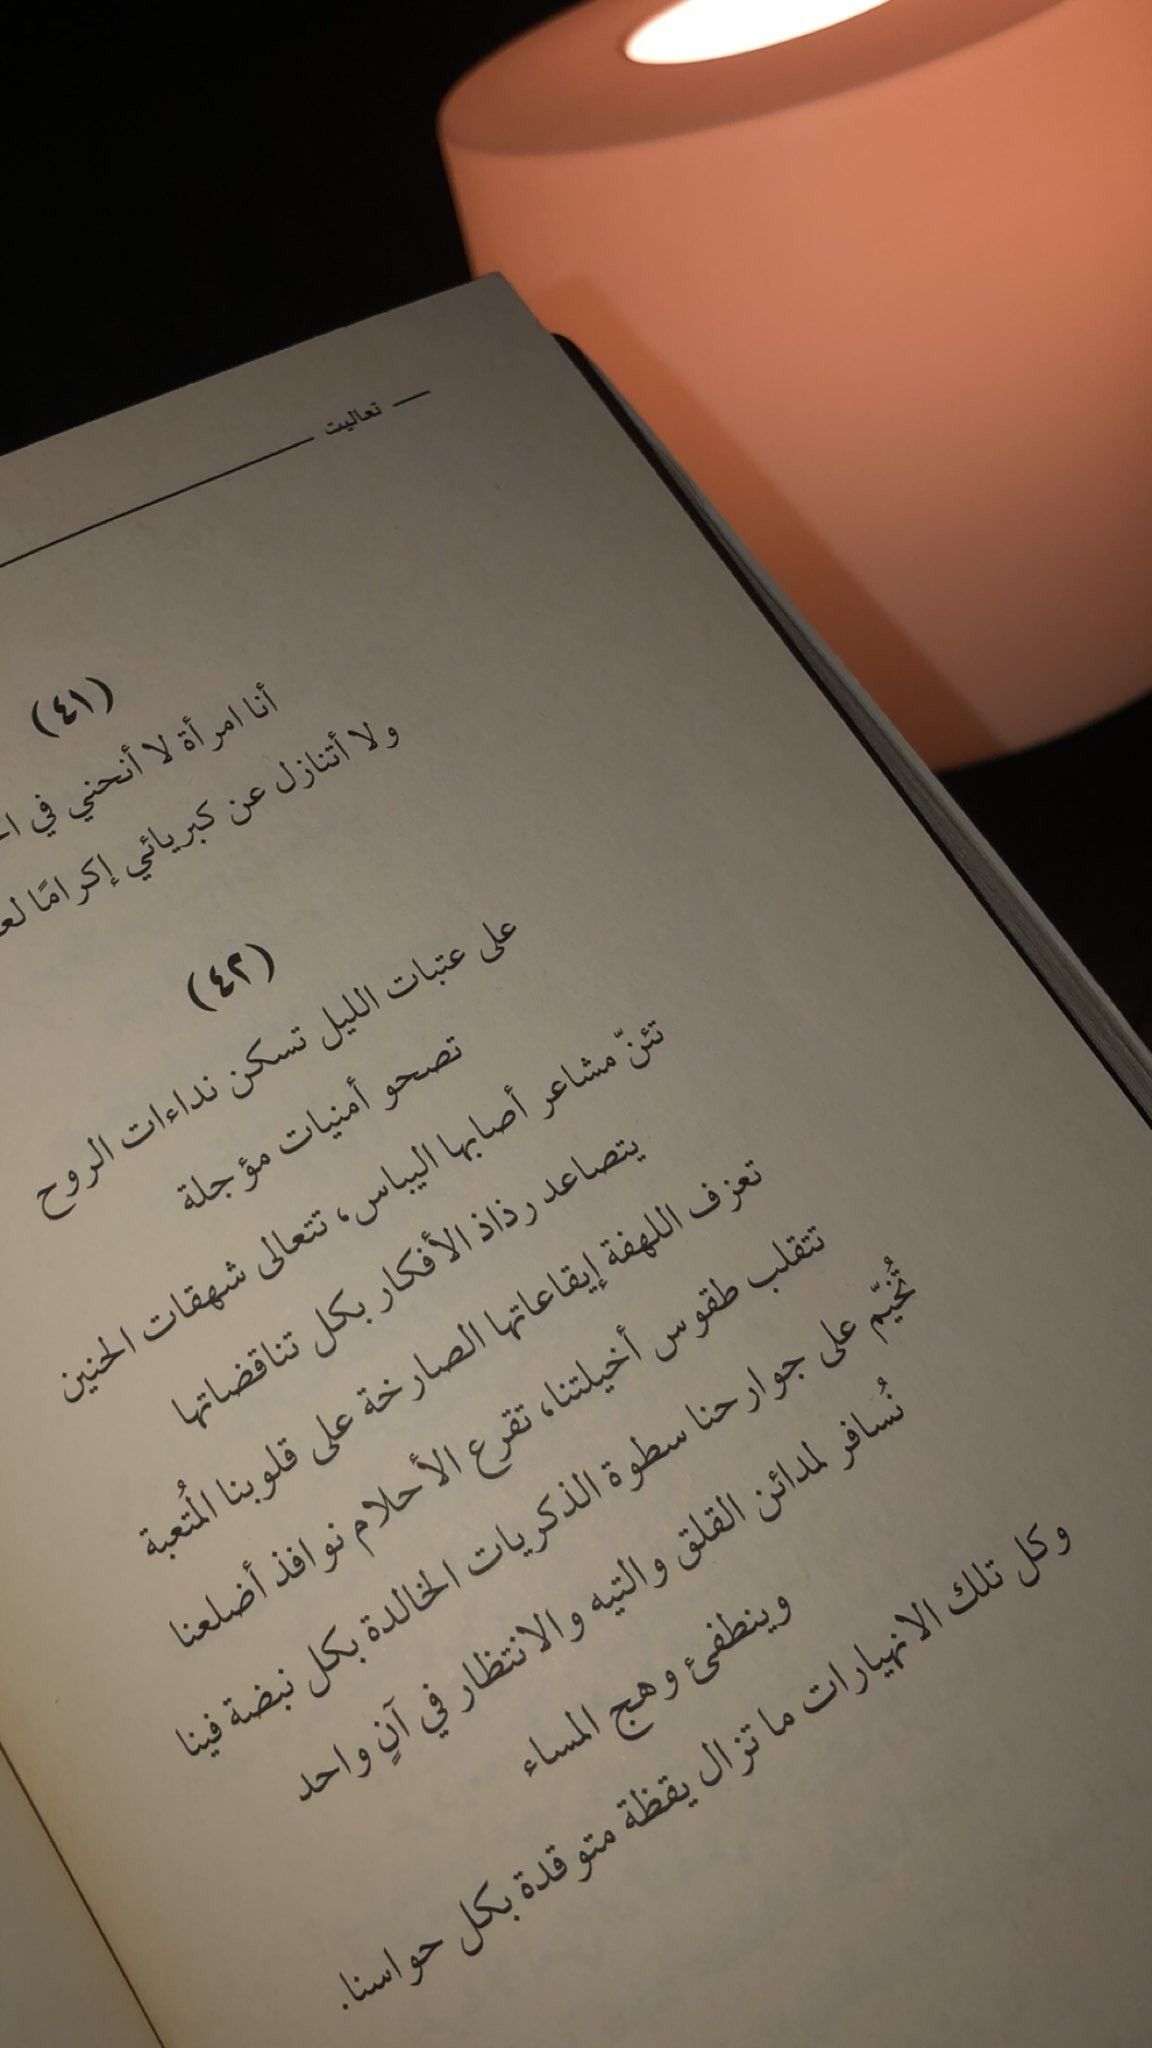 Pin By Syeℓma ۦ On اقتباس من كتاب Romantic Words Cards Against Humanity Words